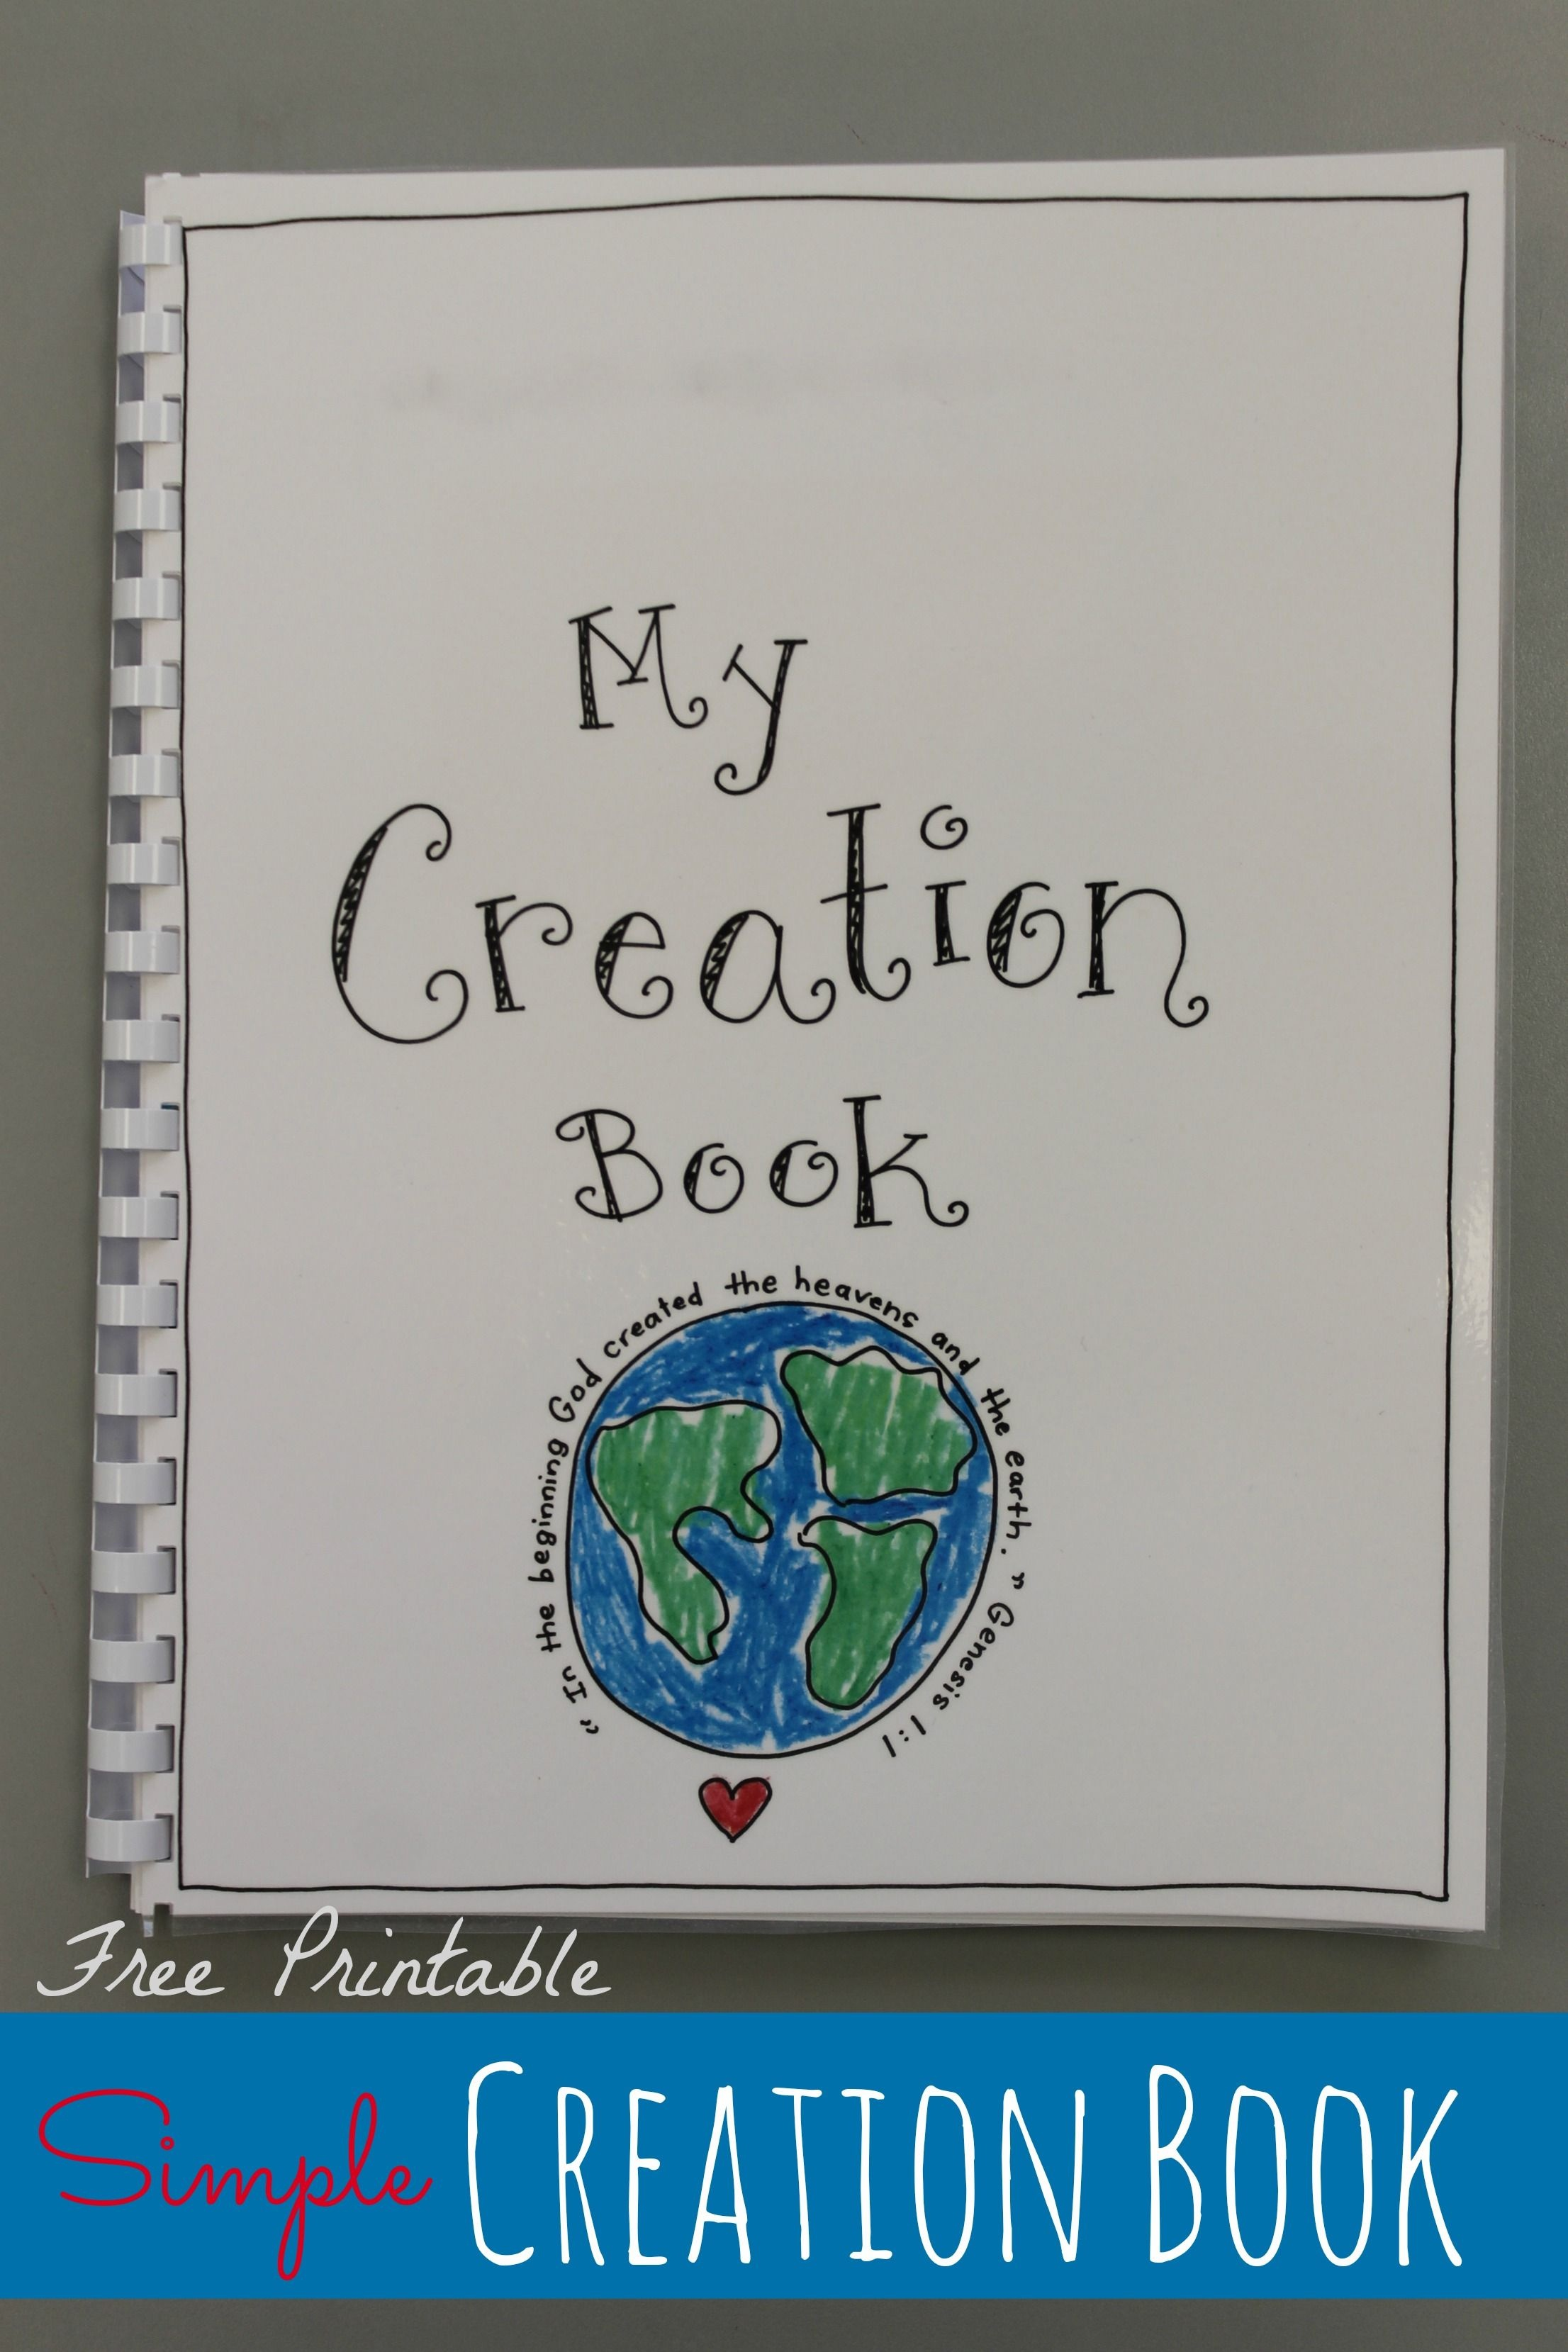 Creation Book - Free Printable | Vbs 2015 Science Lab | Preschool - Free Printable Bible Crafts For Preschoolers